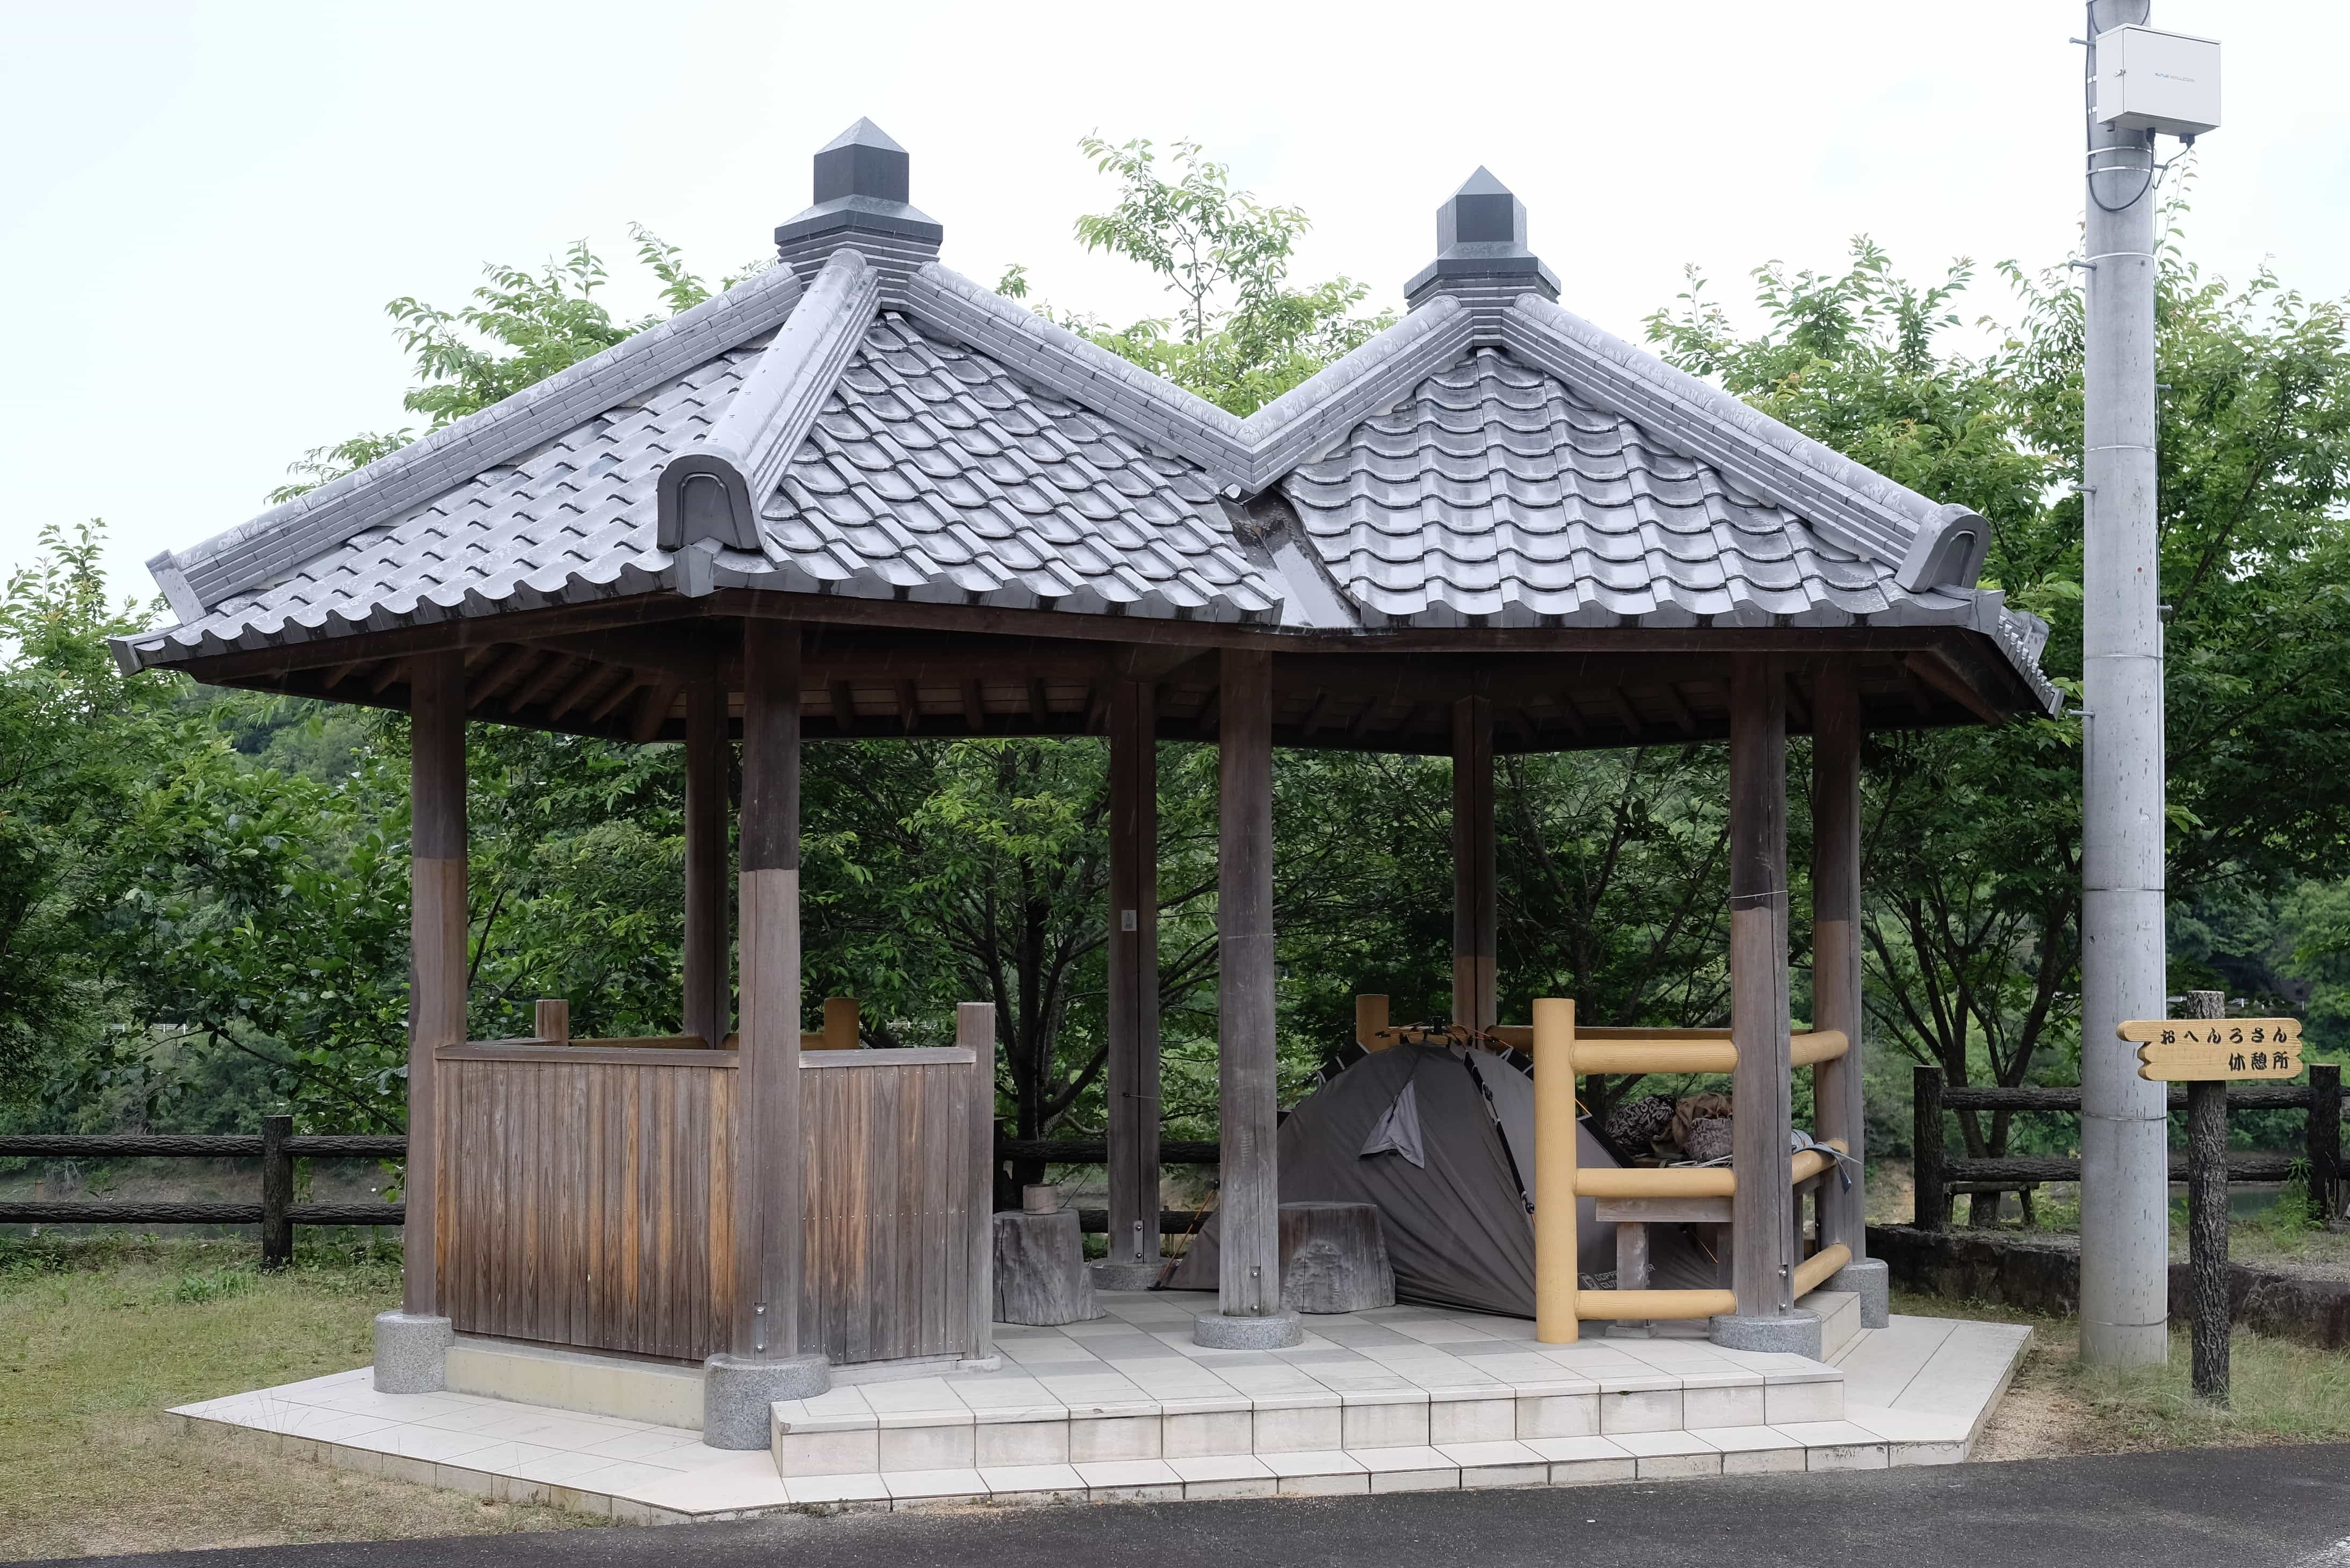 Hut at Maeyama Ohenro Kōryū Salon